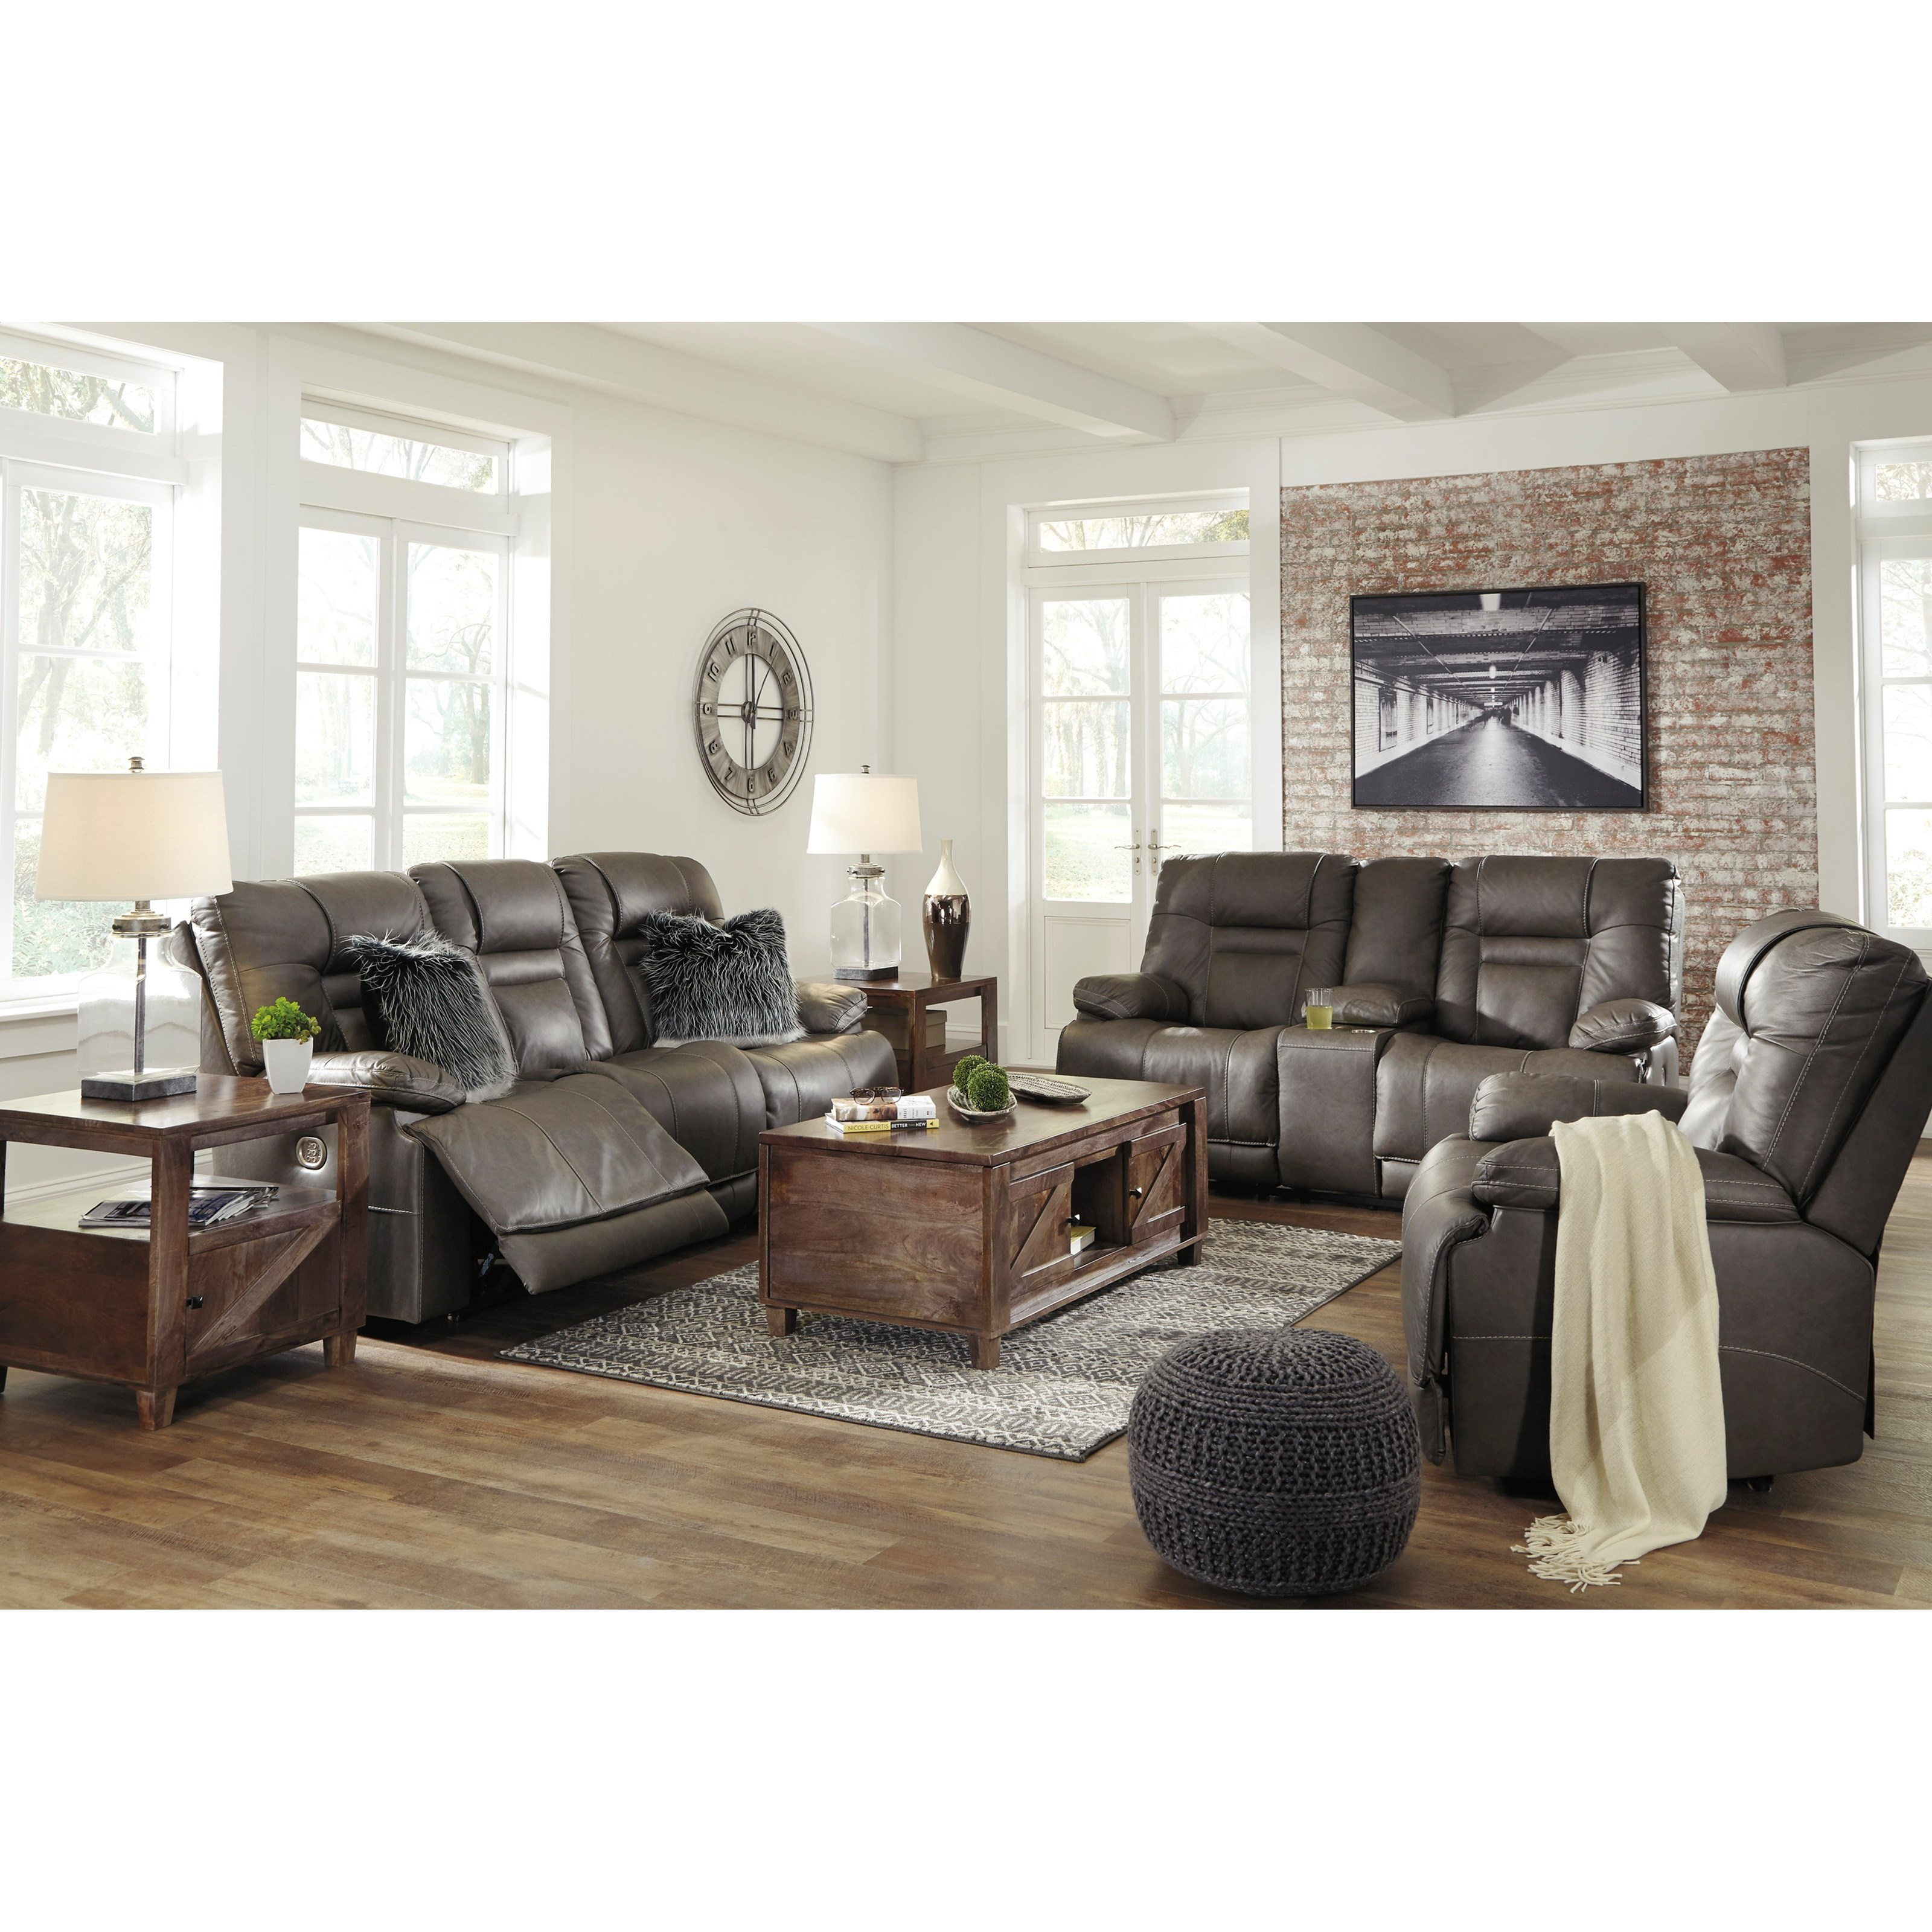 Wurstrow Reclining Living Room Group by Benchcraft at Virginia Furniture Market